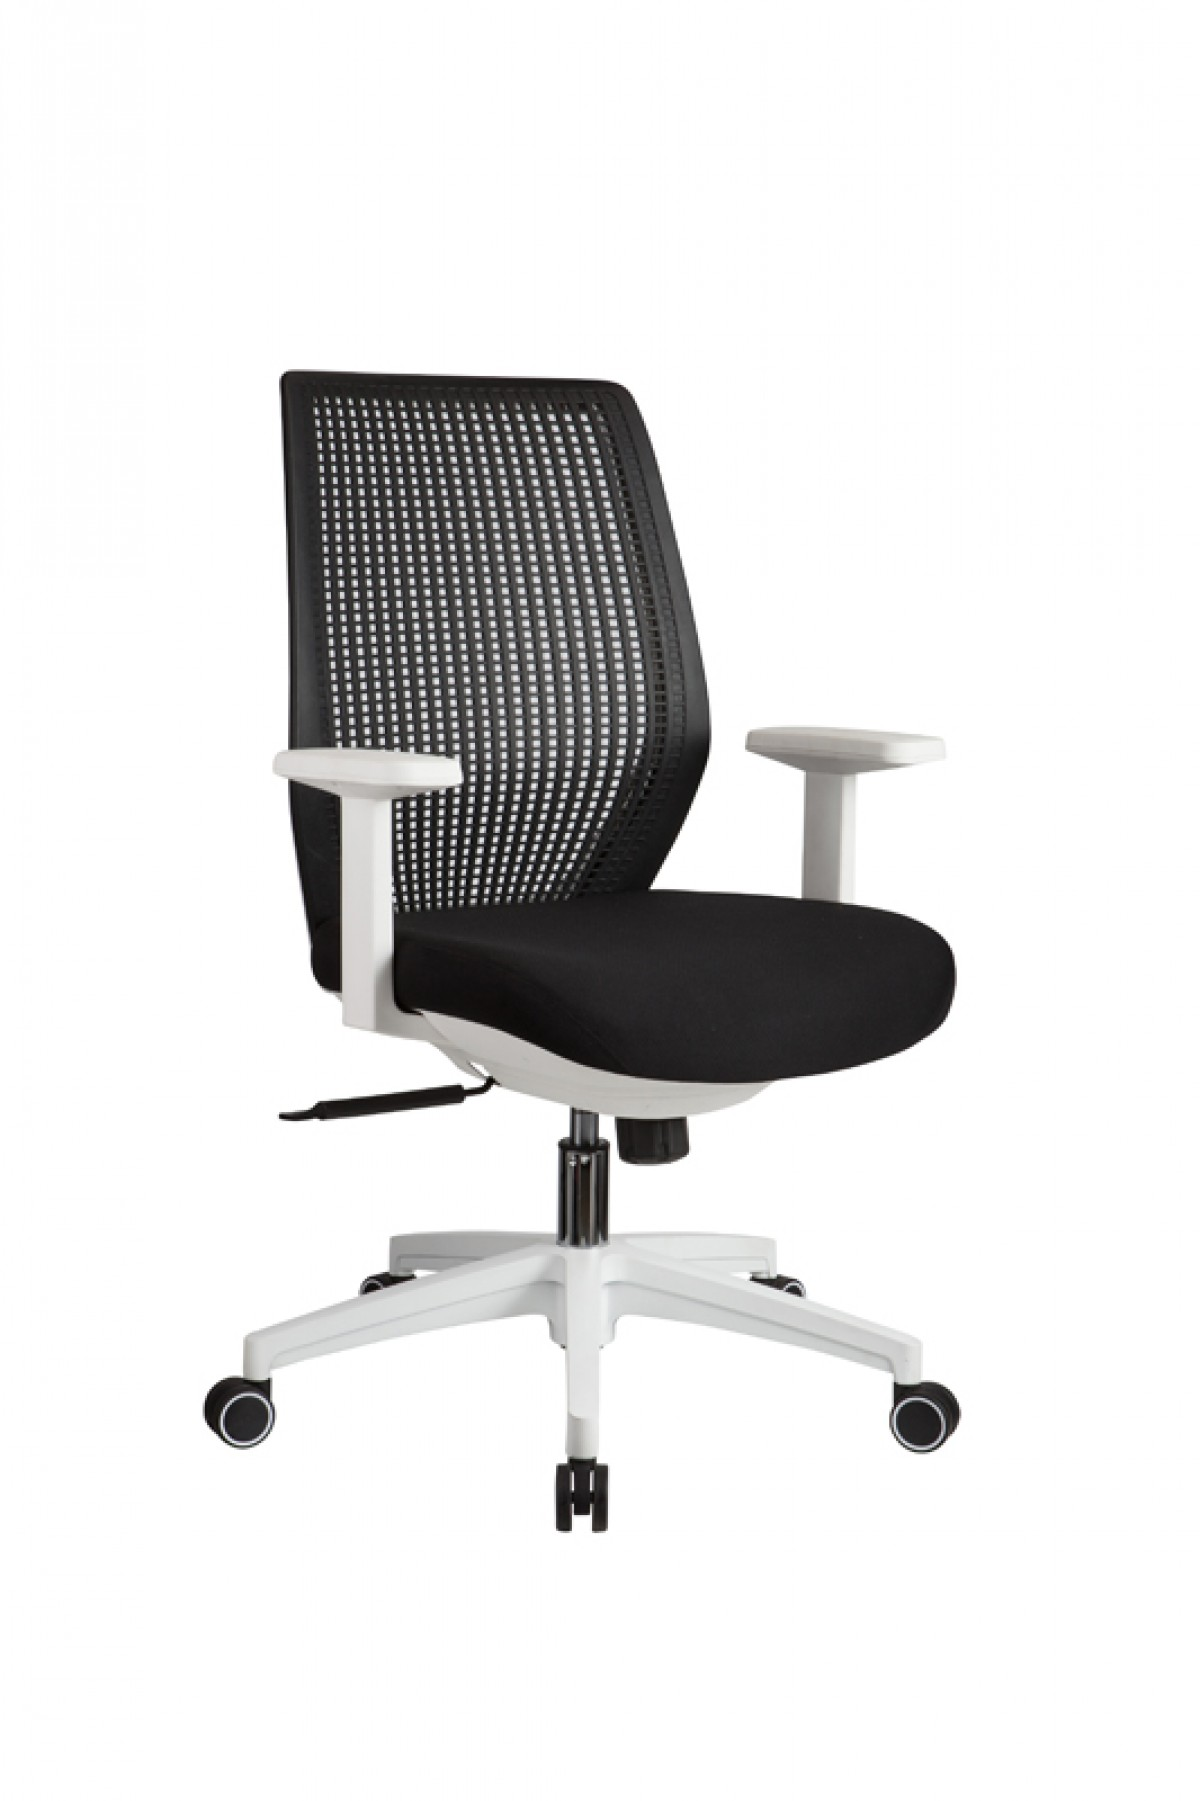 Modrest bayer modern black white office chair office for White modern office furniture